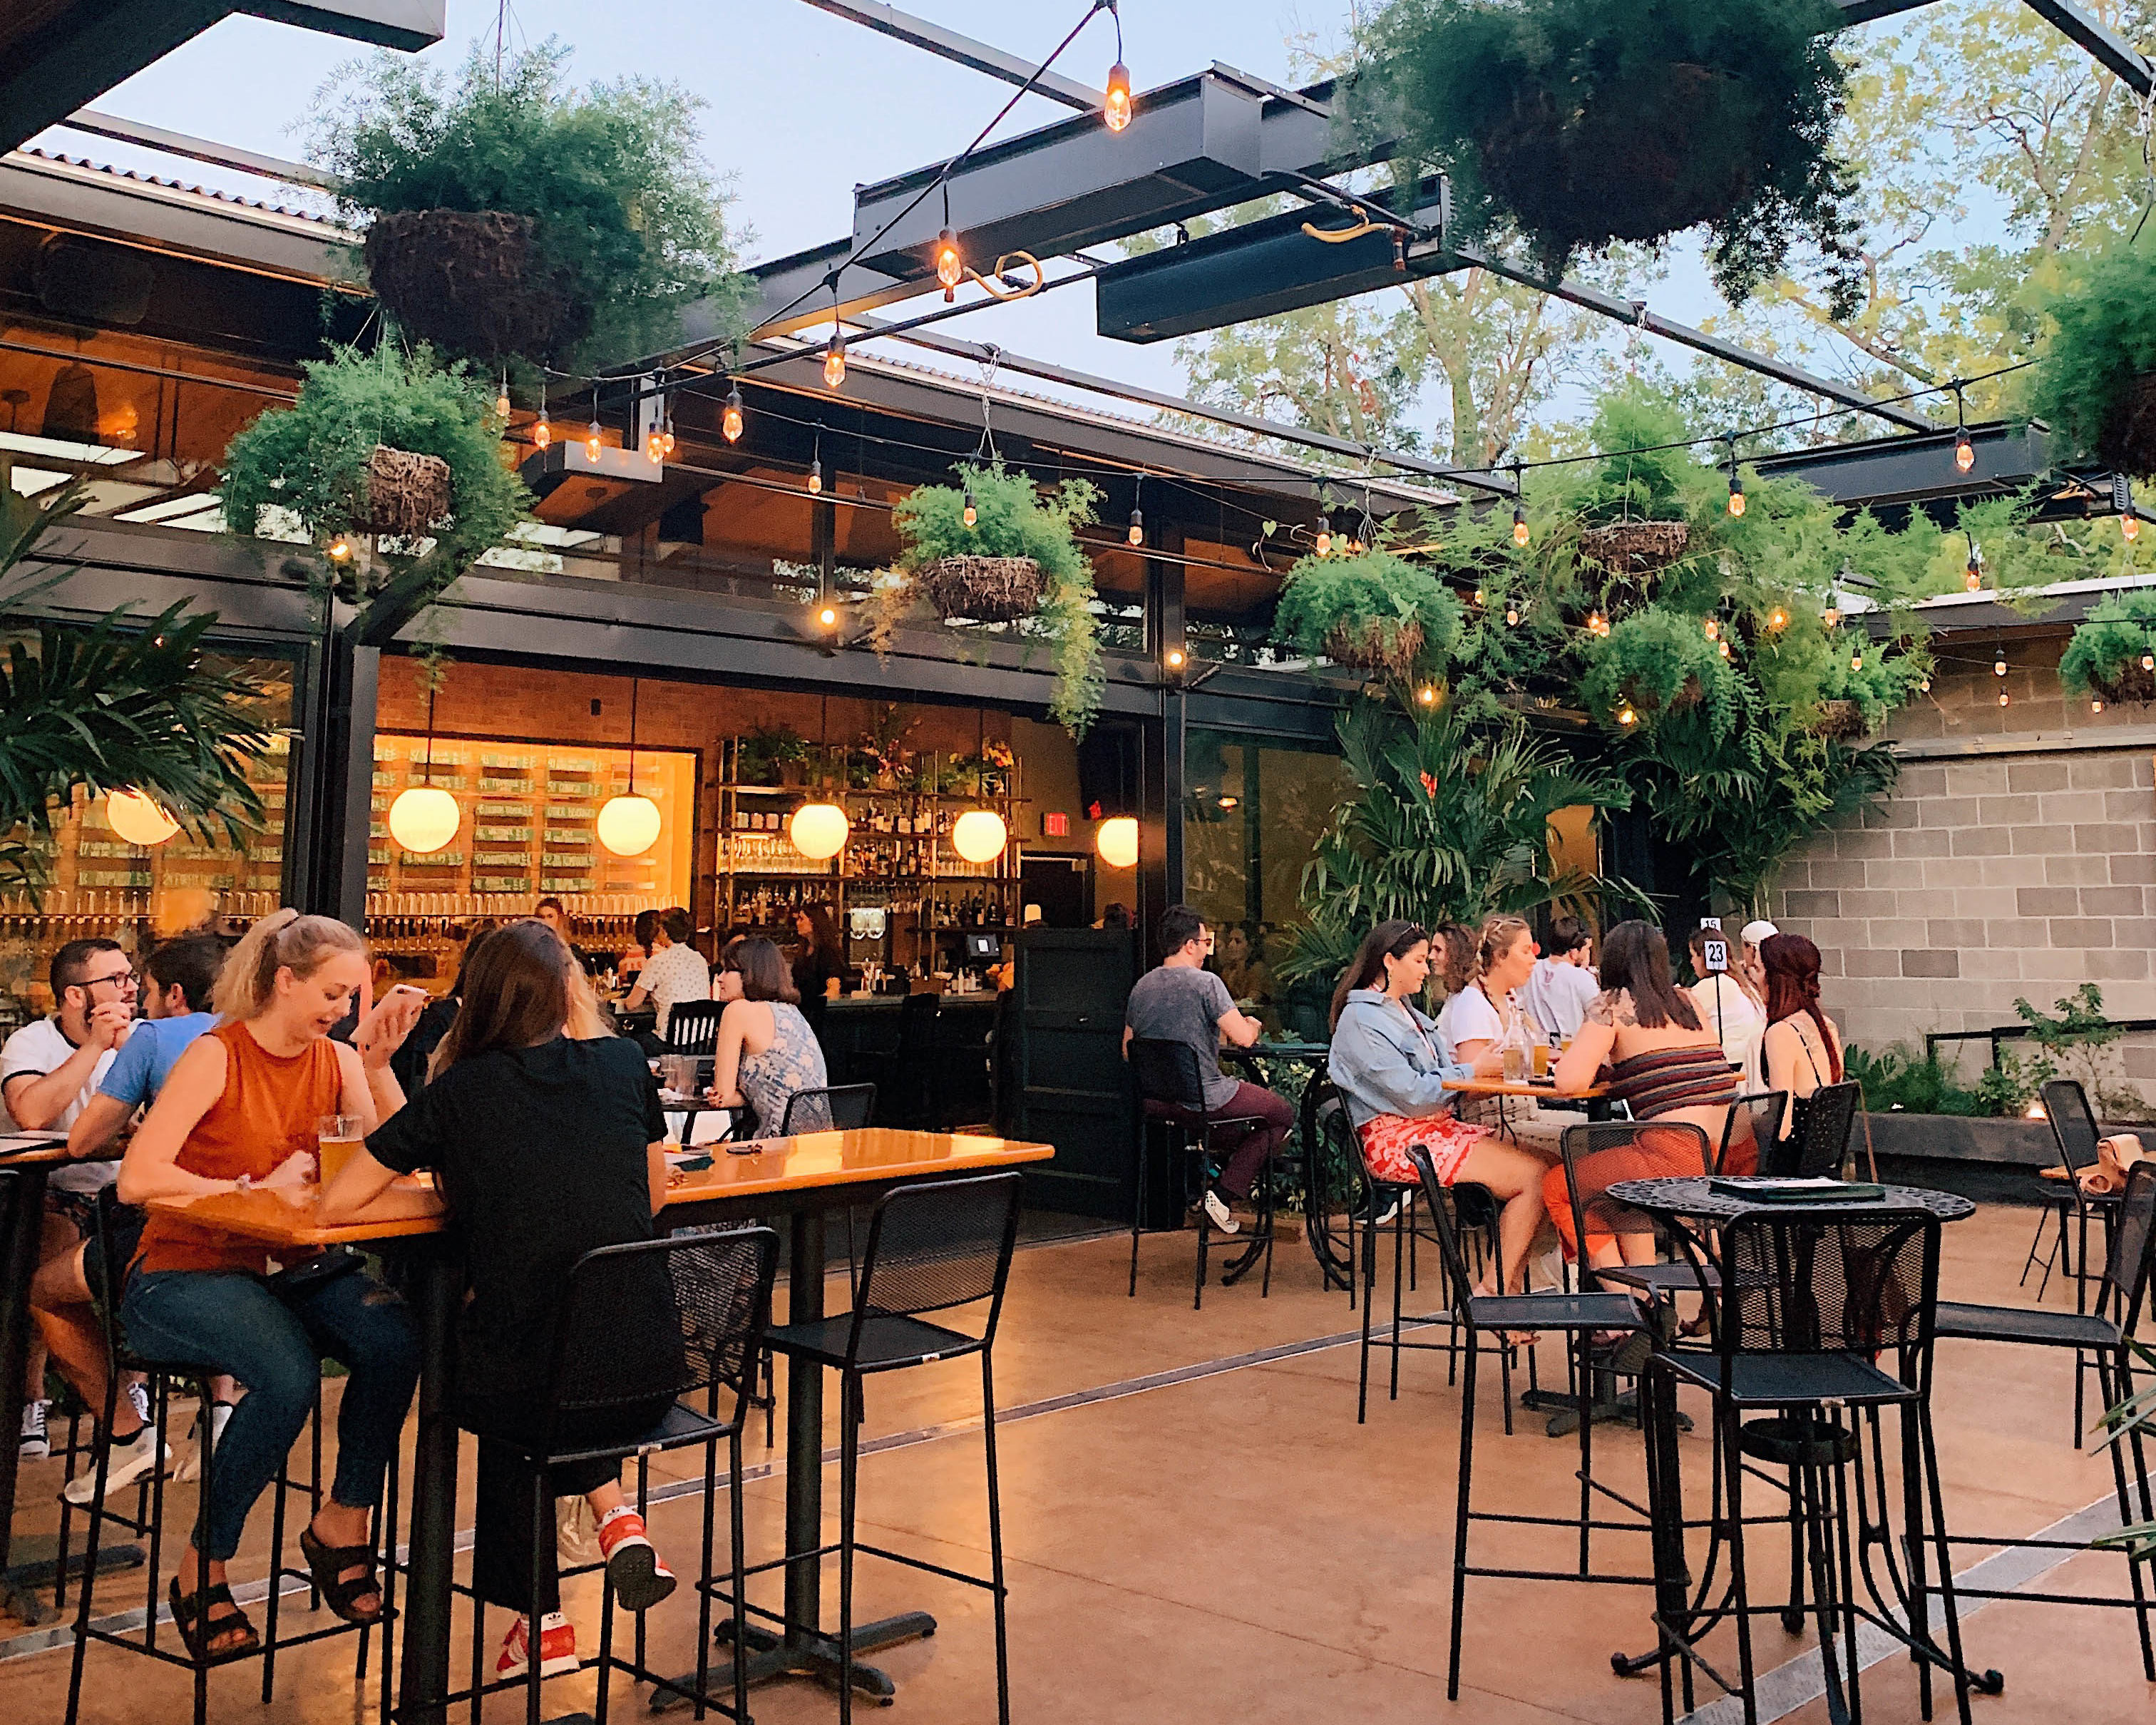 The most exciting restaurant and bar openings in Baton Rouge in 9